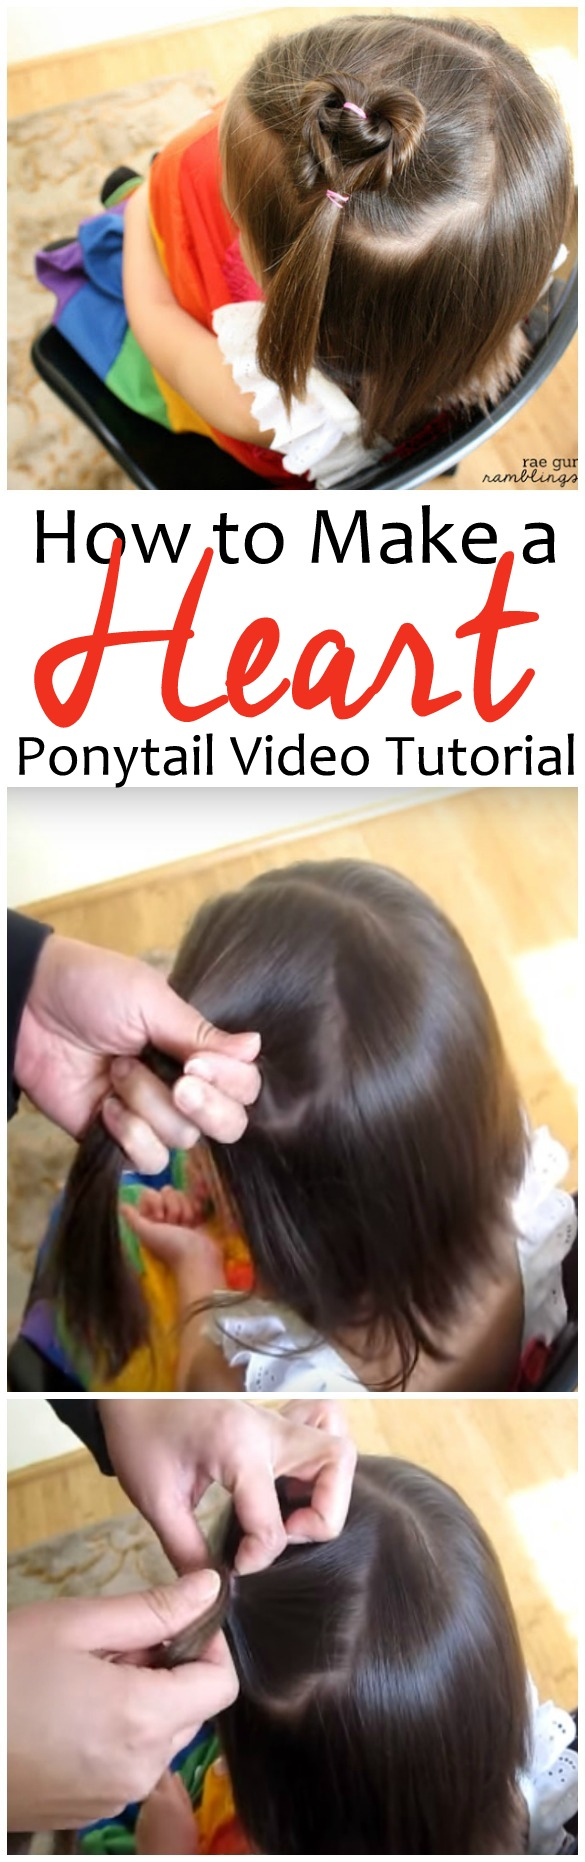 The video makes this adorable heart ponytail so easy and doable. Great hair tutorial.